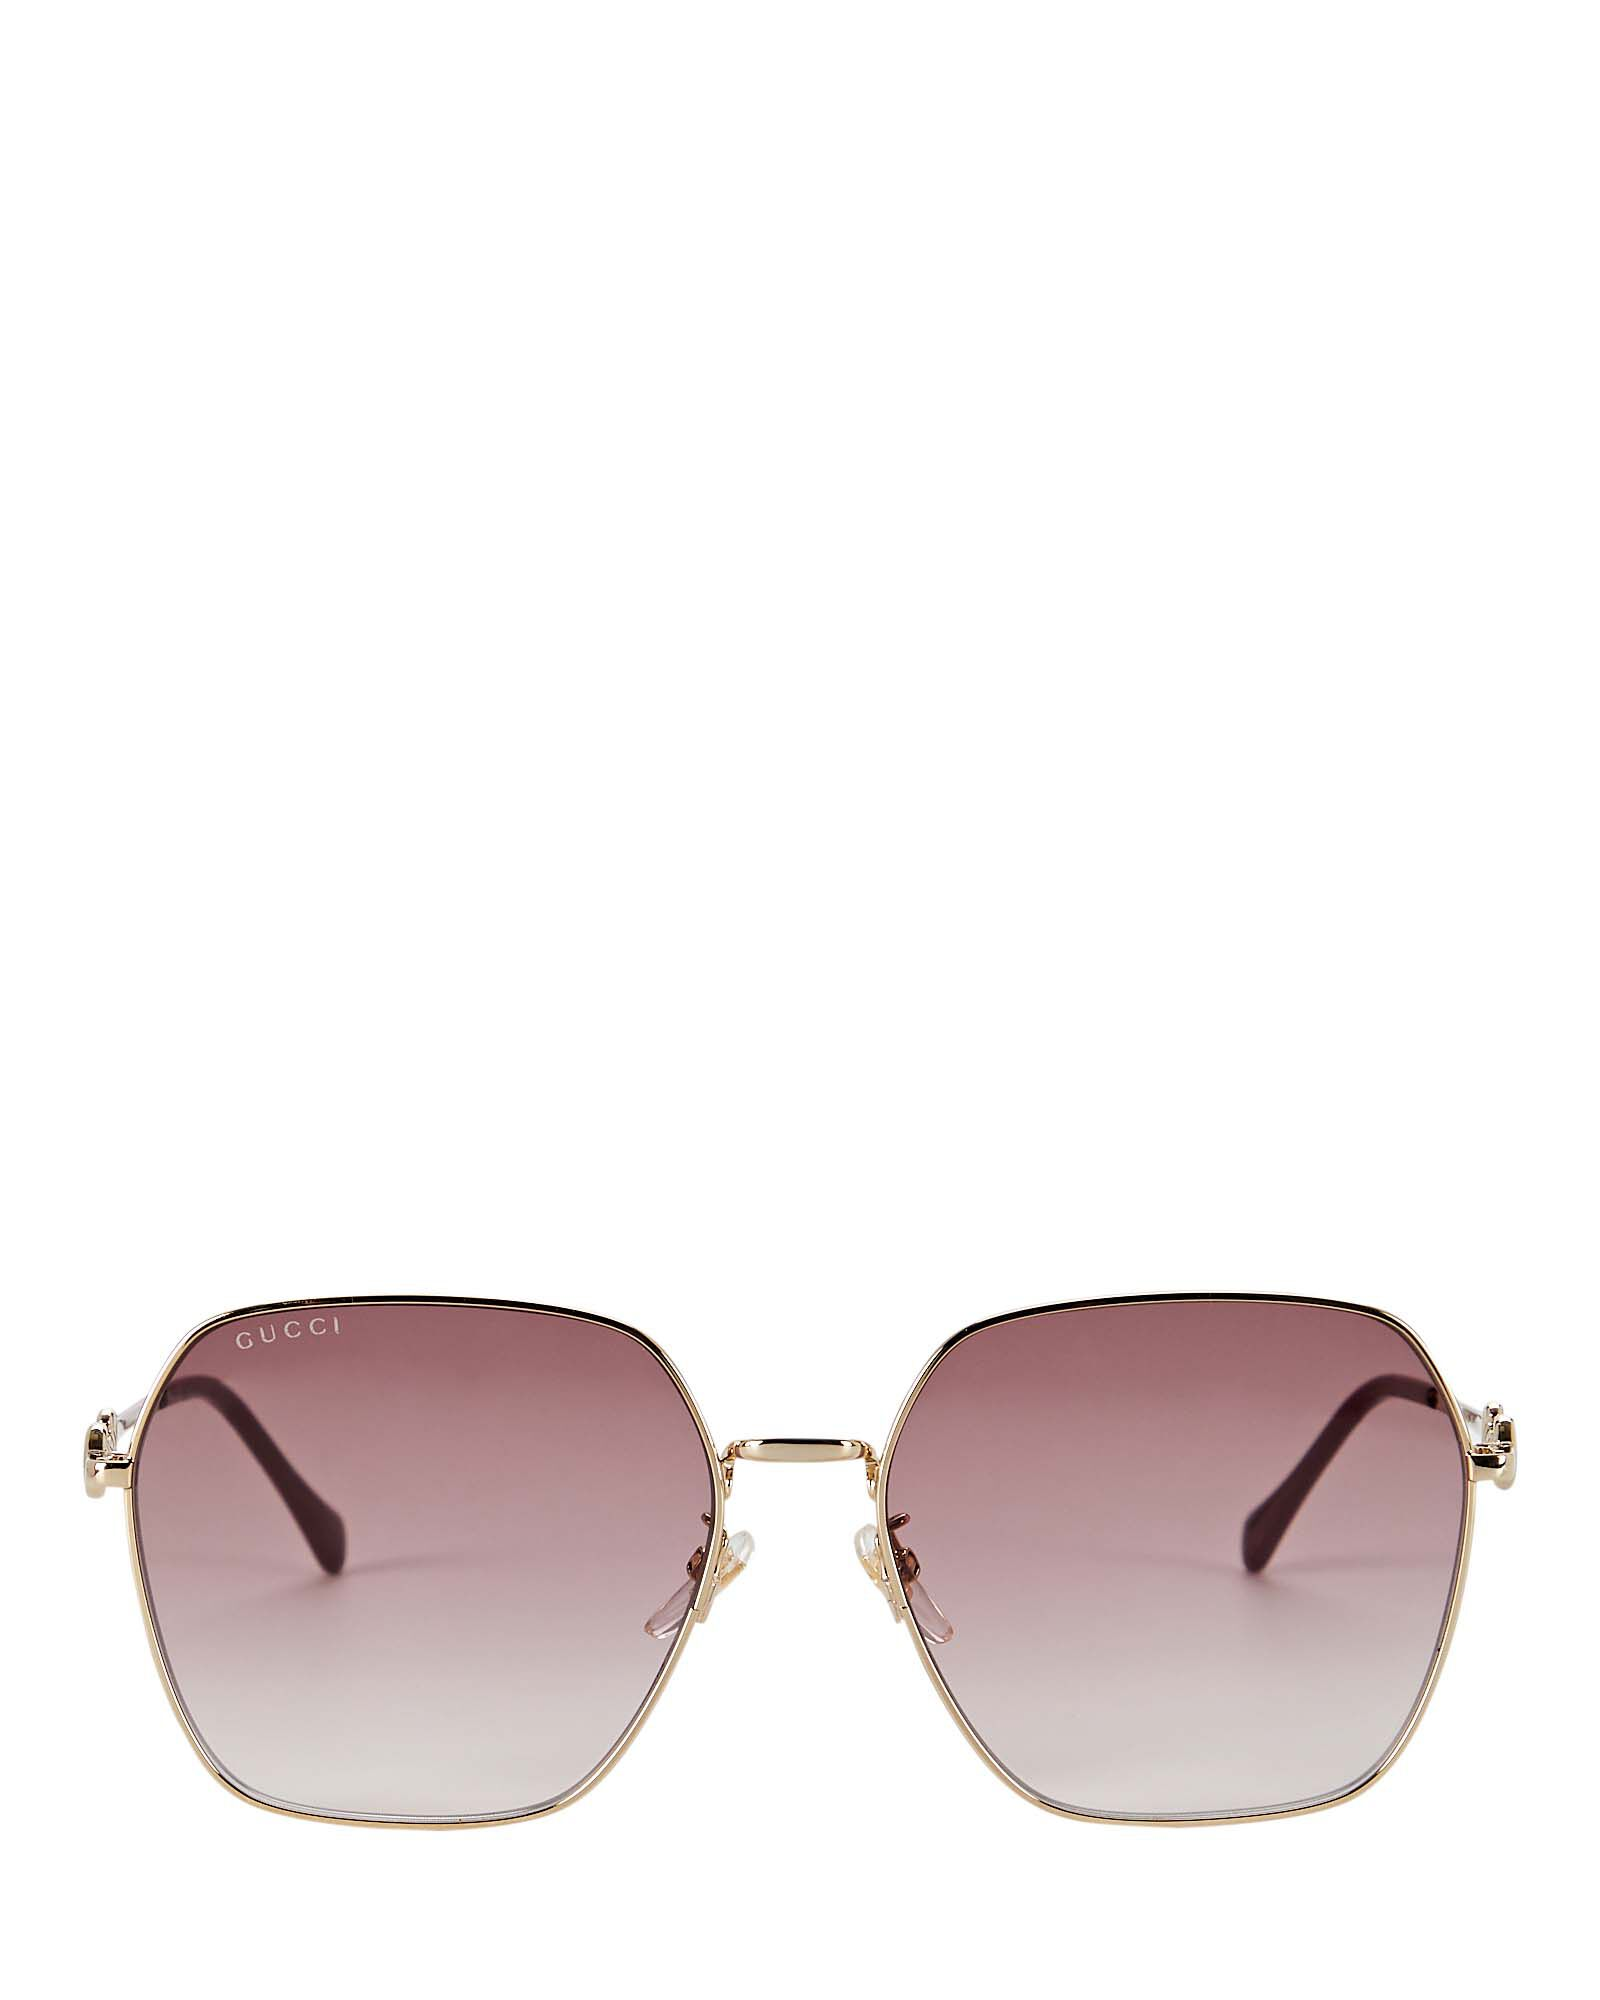 Oversized Rounded Square Sunglasses, GOLD, hi-res